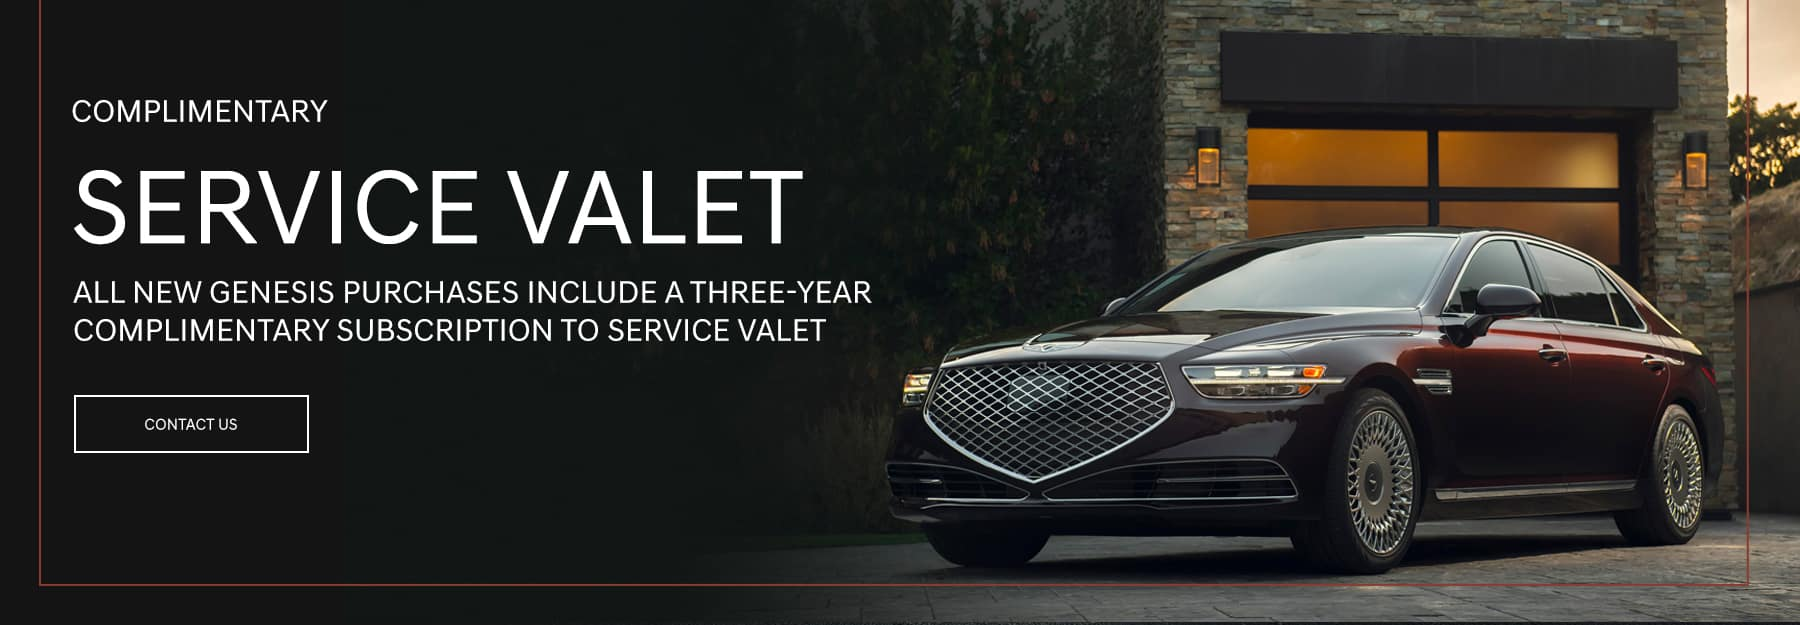 Complimentary Service Valet. All new Genesis purchases include a three-year complimentary subscription to Service Valet